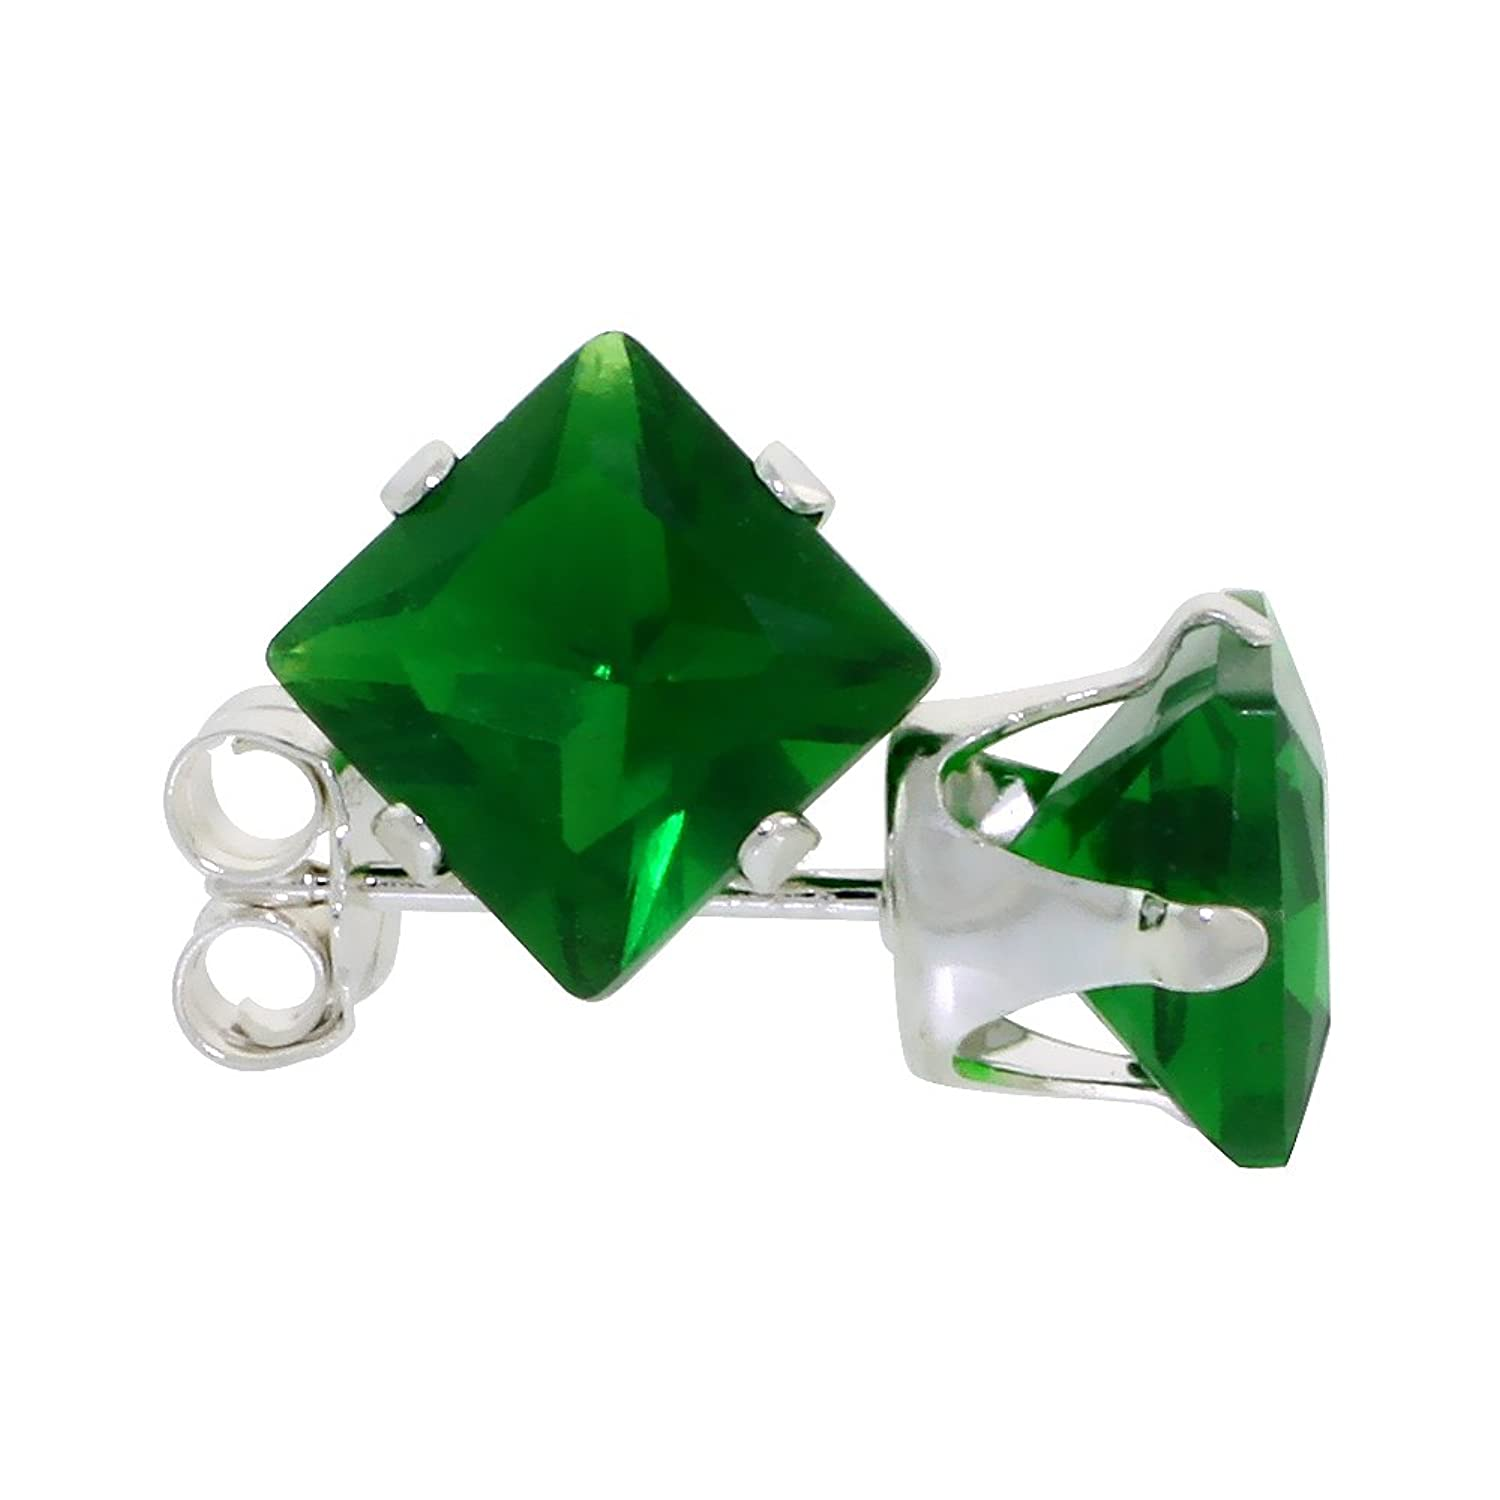 green setting products prong rose earringsfine emerald cut stud gdd eagle earrings princess gold